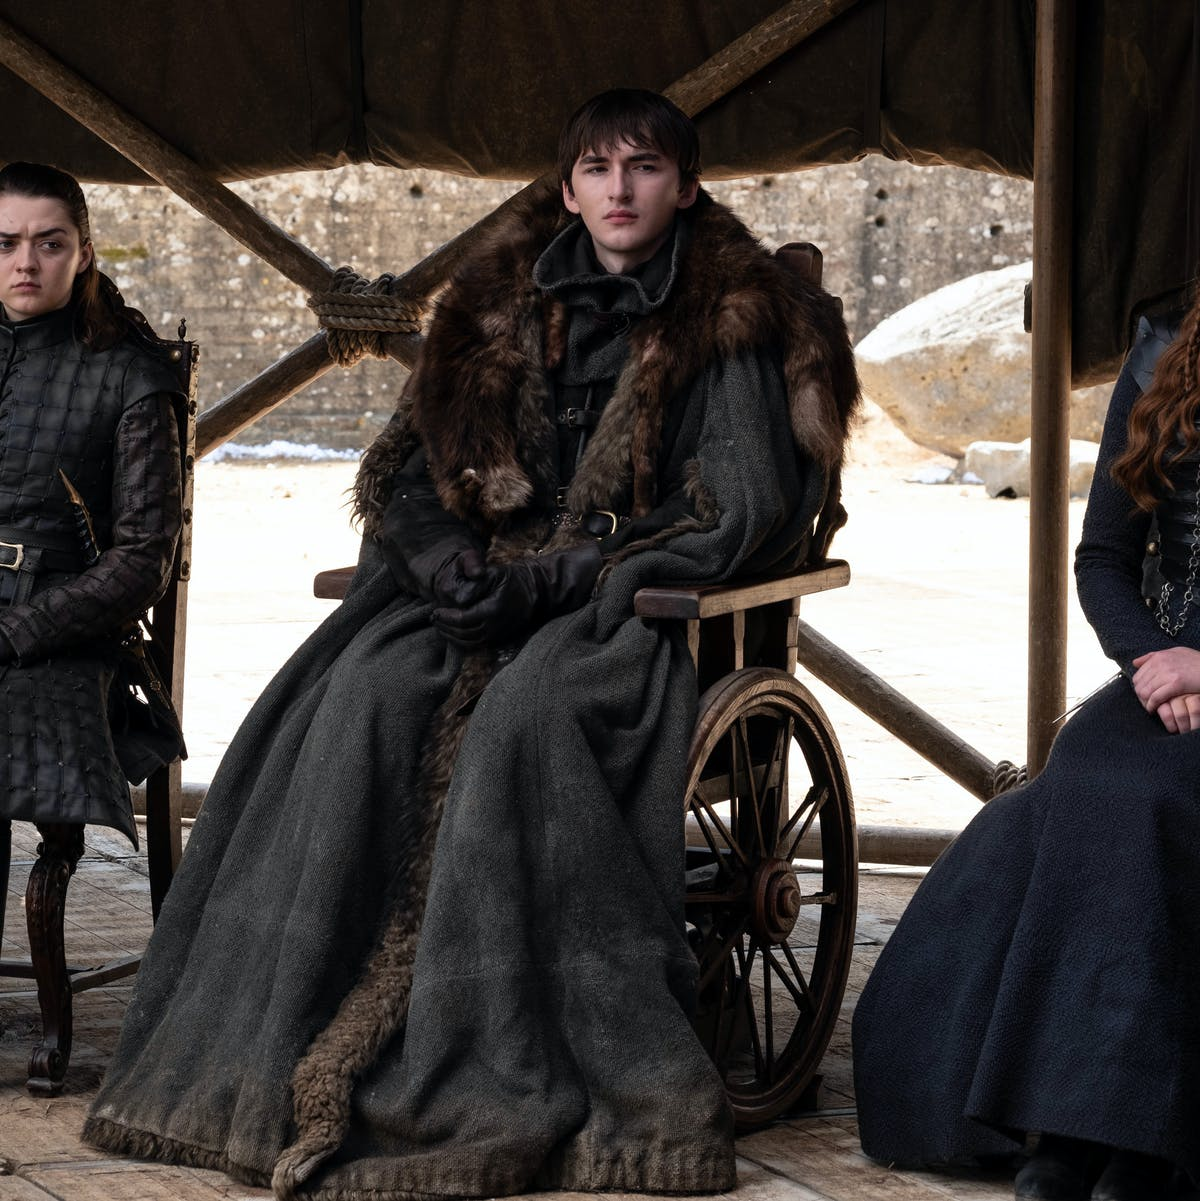 'Game of Thrones' Emmy Nominations: Here Are the 9 It's Most Likely to Win